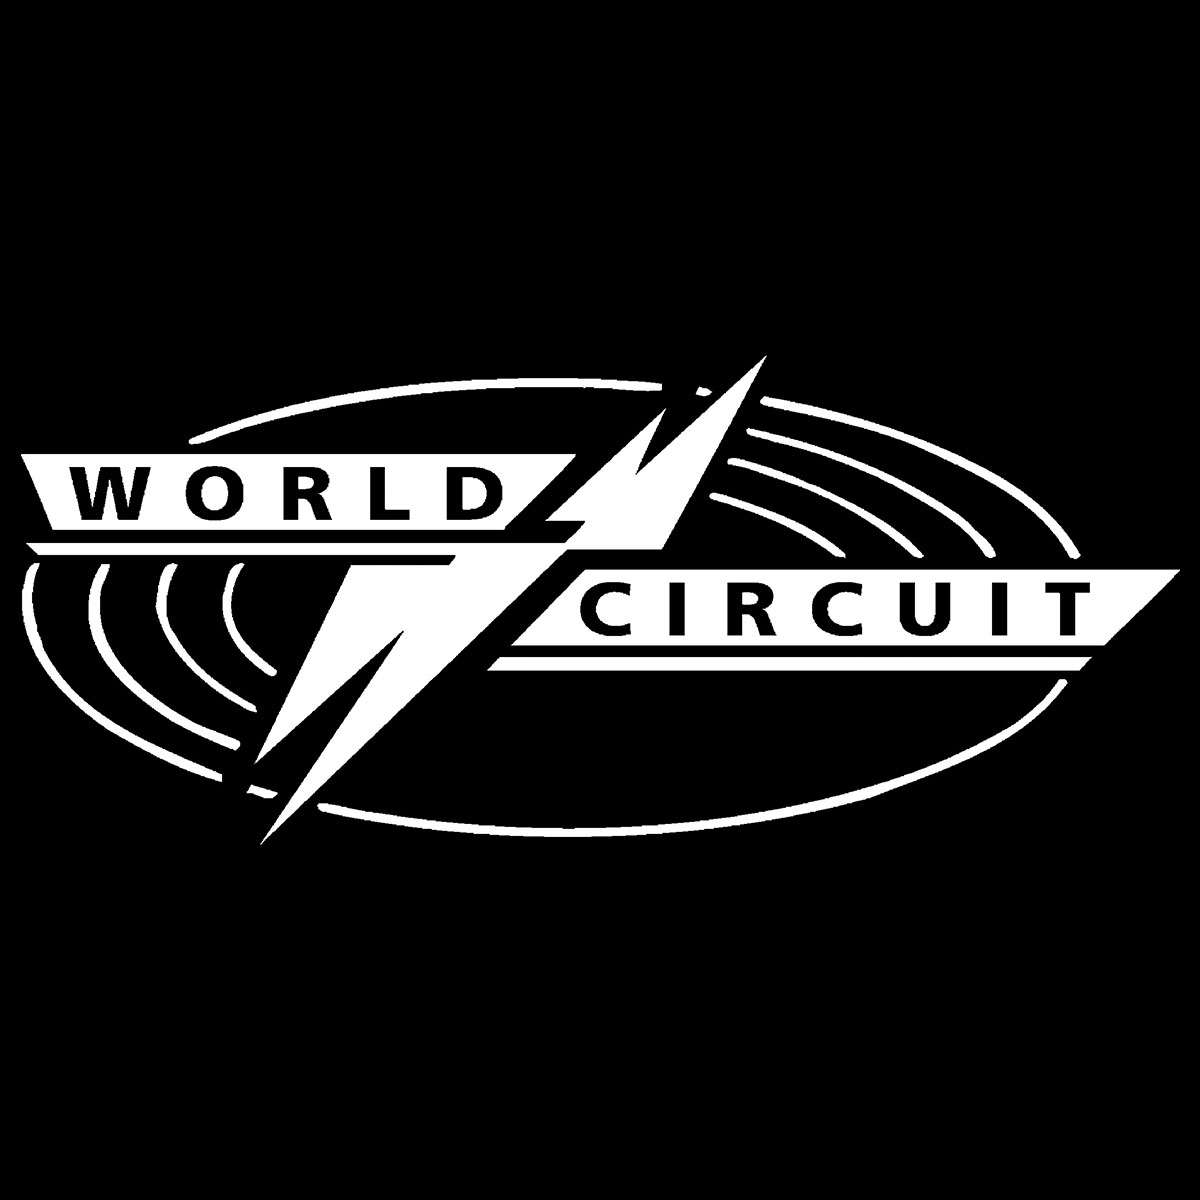 World-Circuit-Hi-Res-Logo.jpg